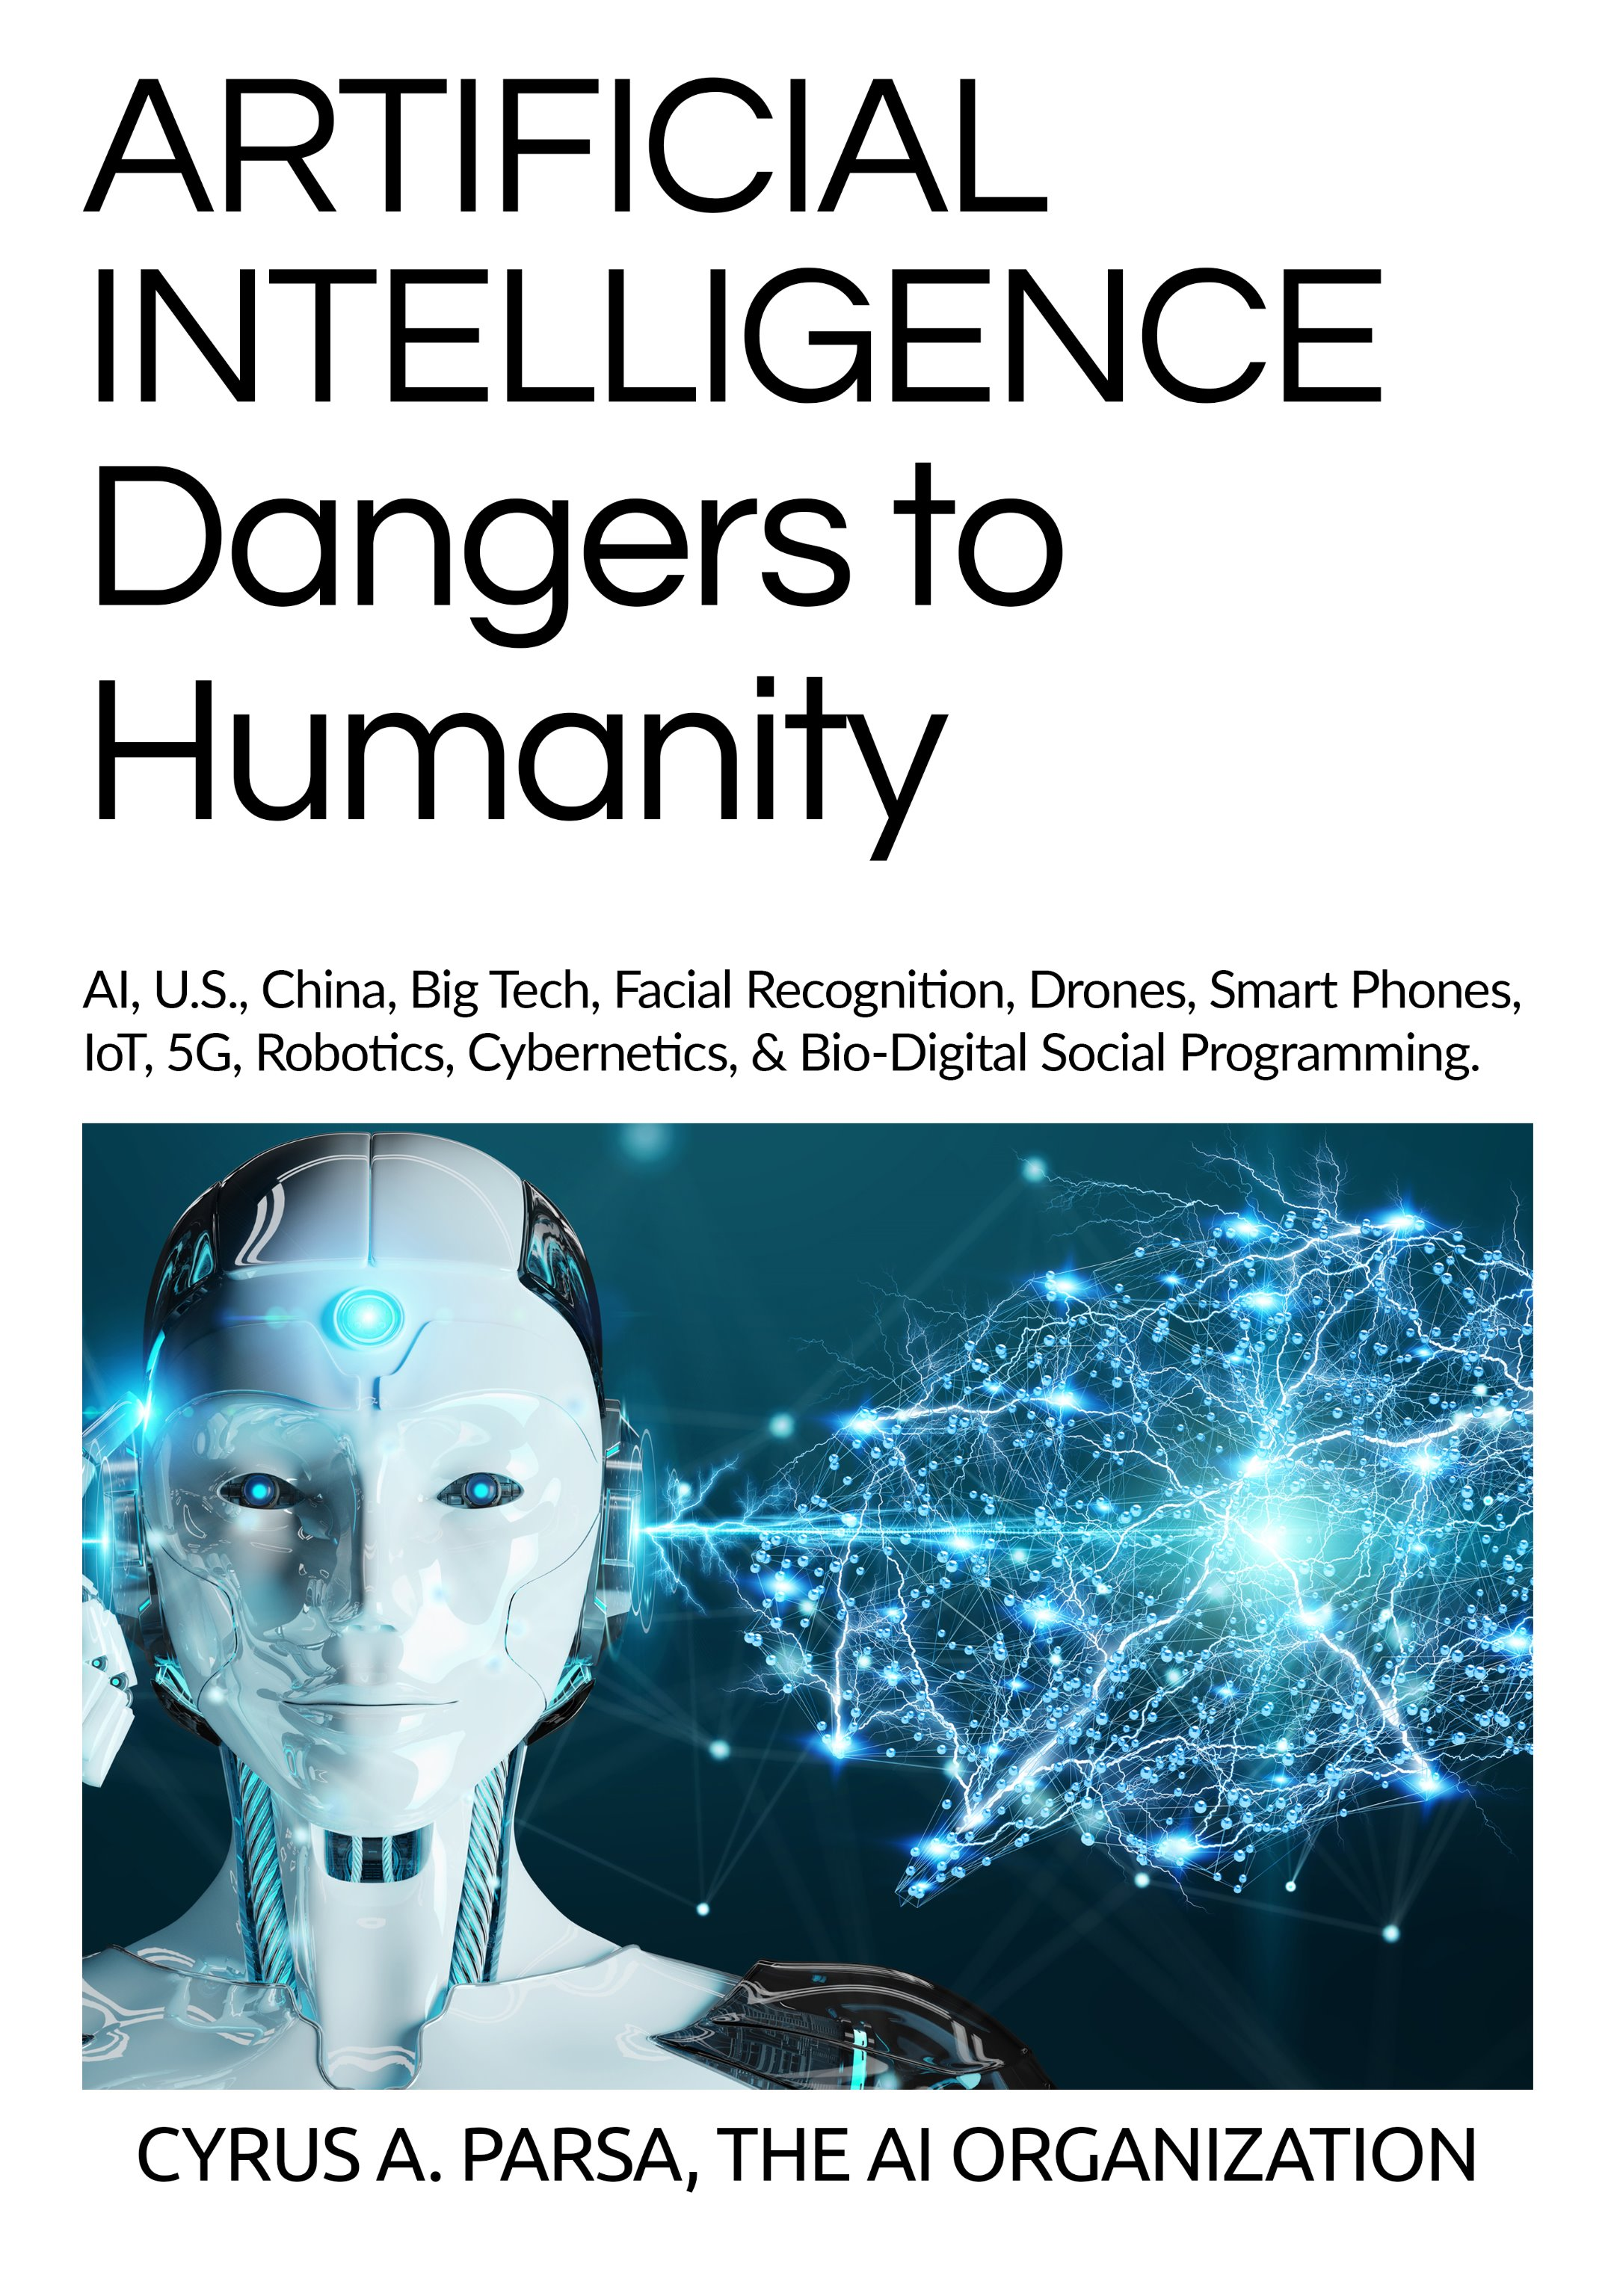 ARTIFICIAL INTELLIGENCE DANGERS TO HUMANITY - Via Shaker